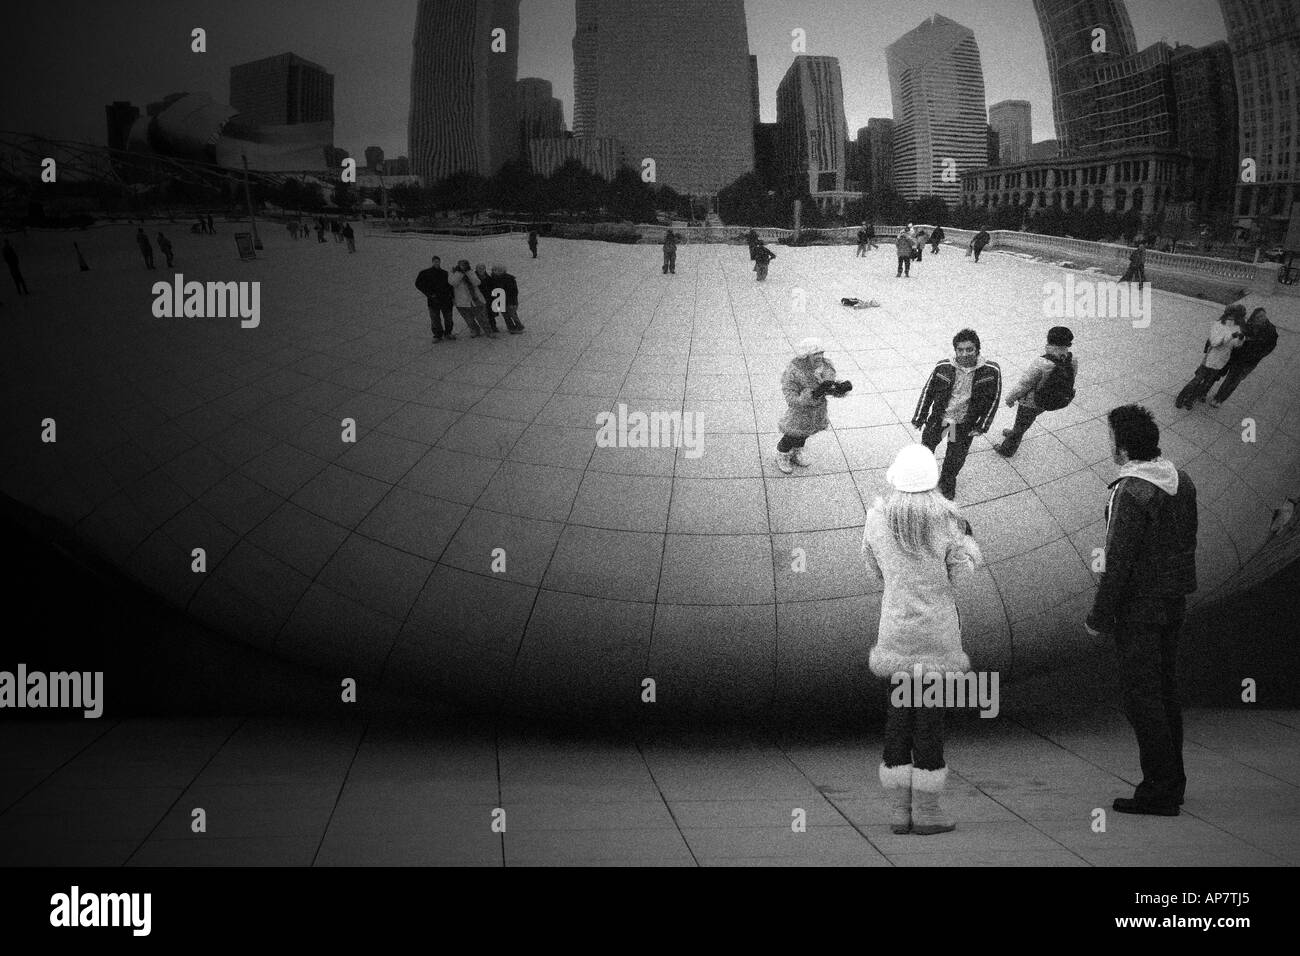 A couple looking at each other s reflections in the bean sculpture in millenium park in chicago downtown p keywords chicago mill · rwi fine art photography